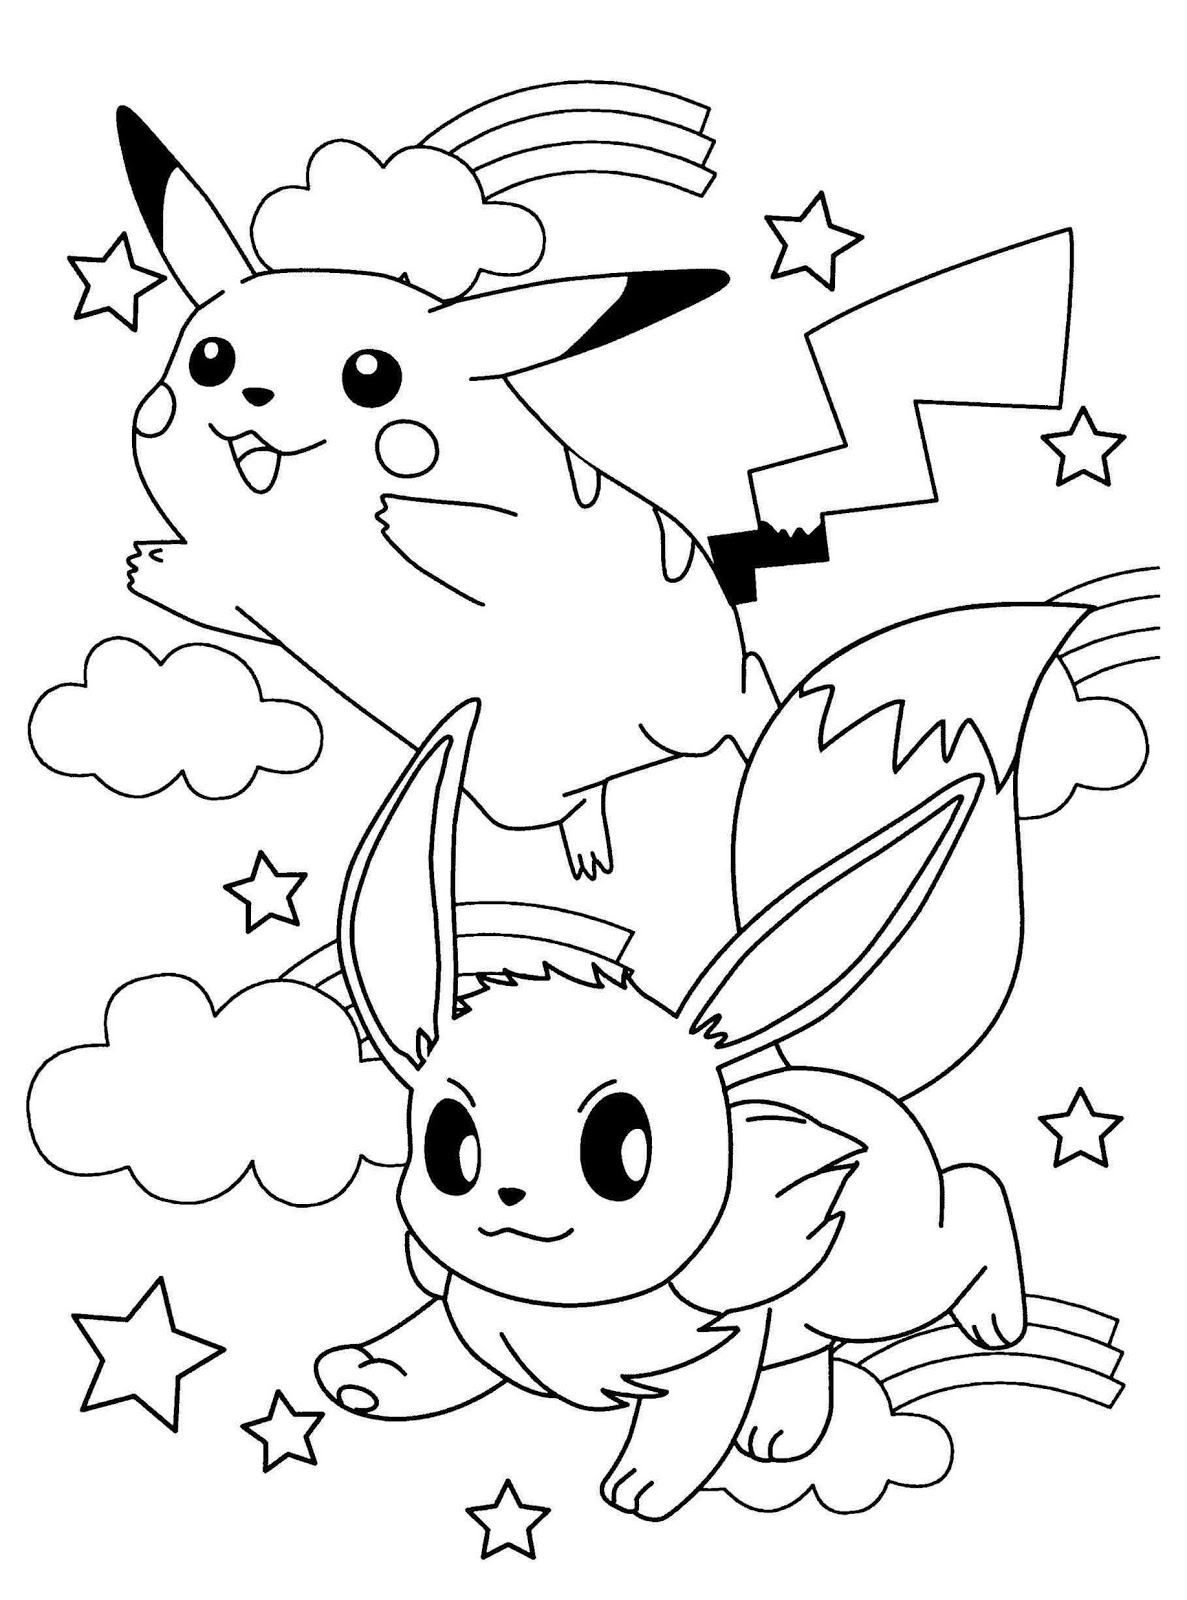 full size printable cute eevee and pikachu coloring pages pictures to print out - pokemon starters coloring pages